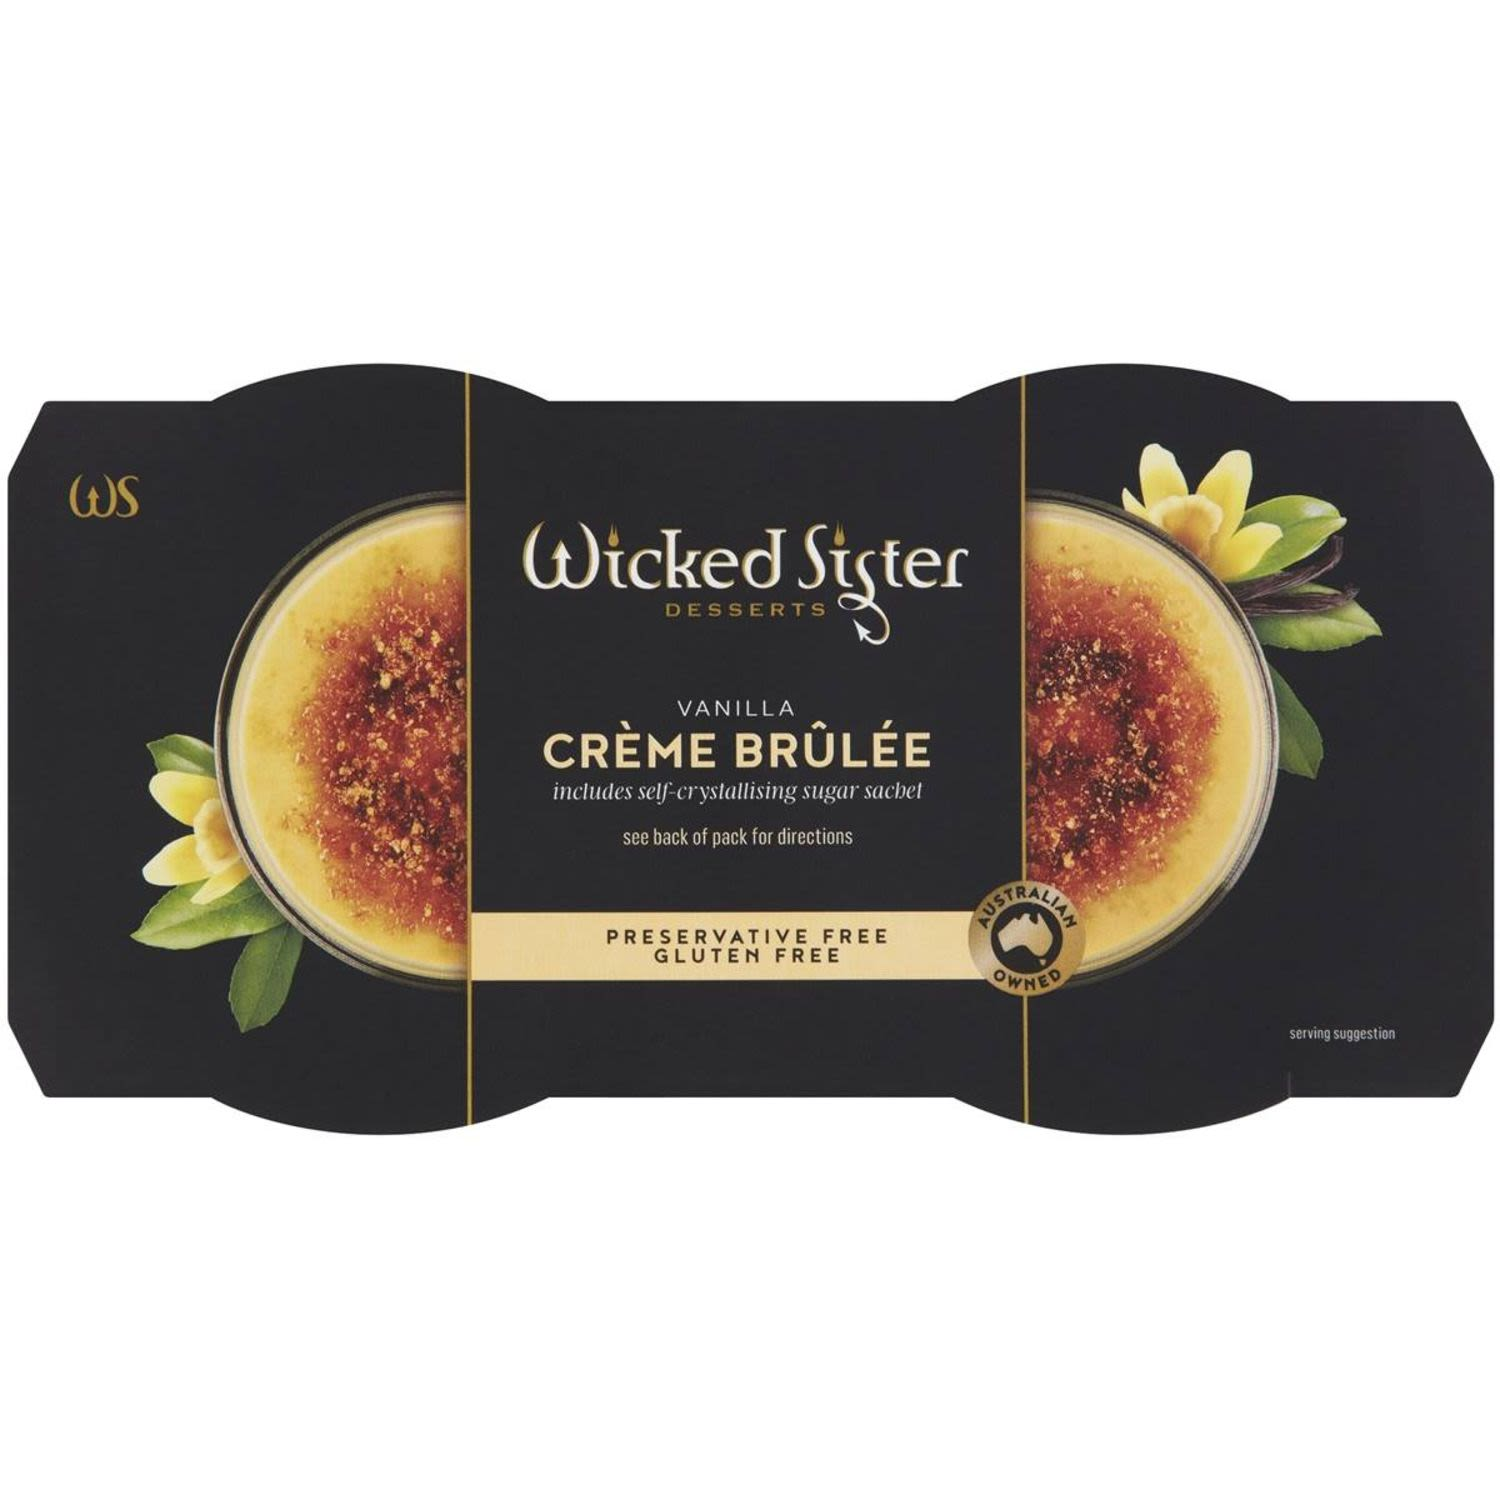 Wicked Sister Vanilla Creme Brulee, 2 Each